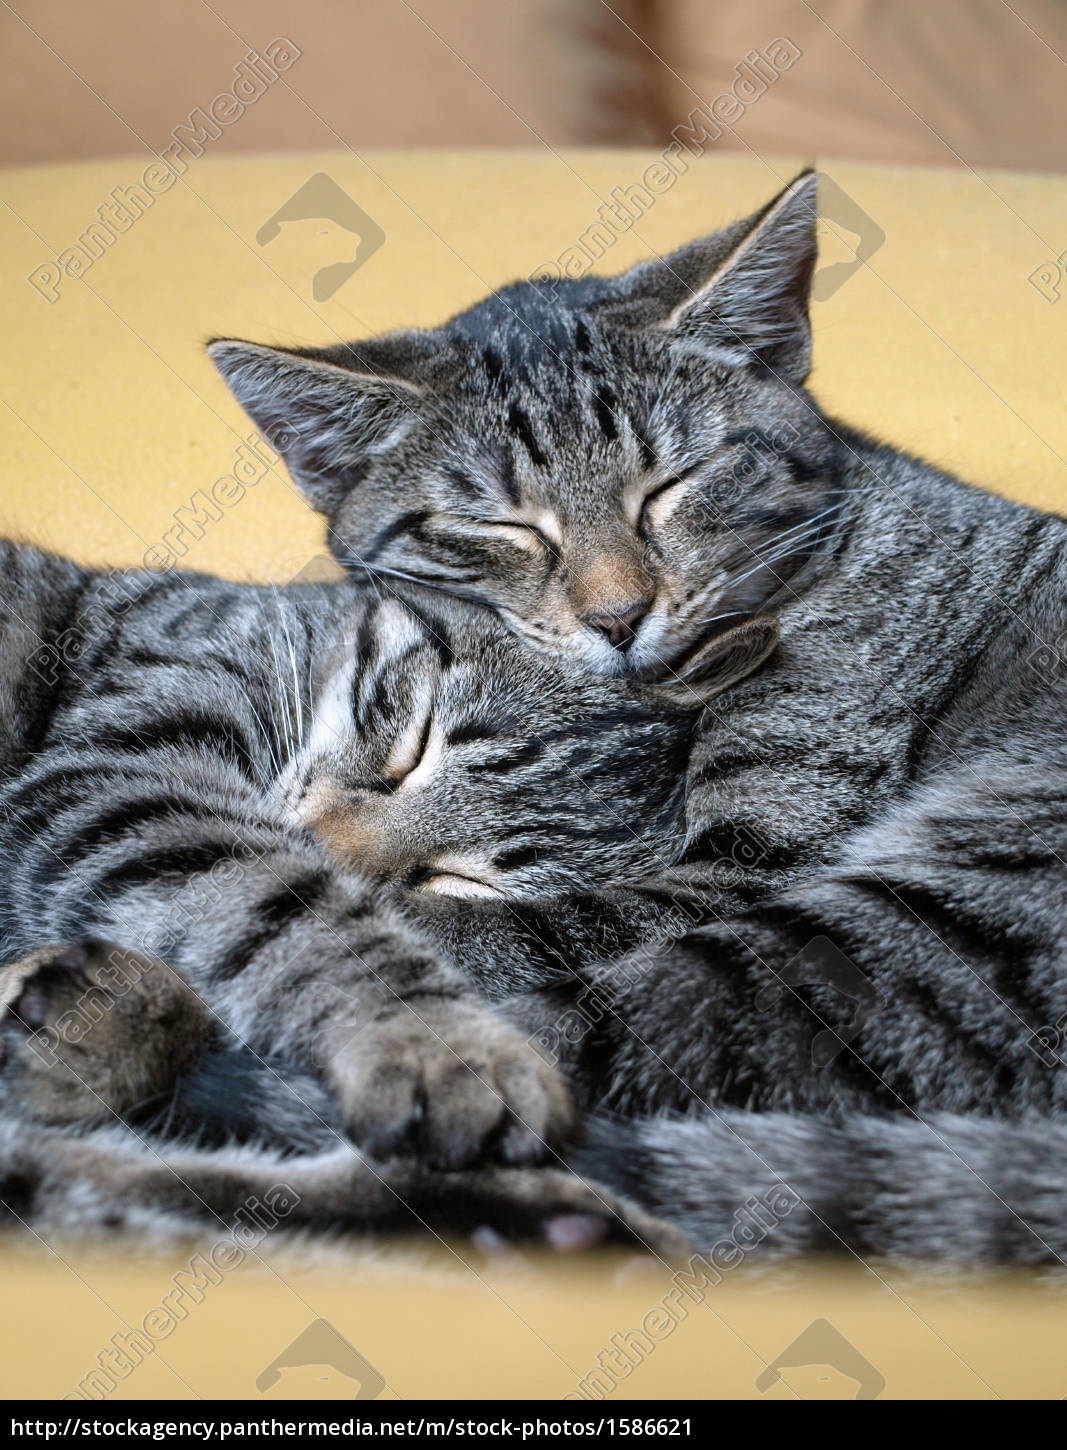 Stock Photo 1586621 , cats snuggling